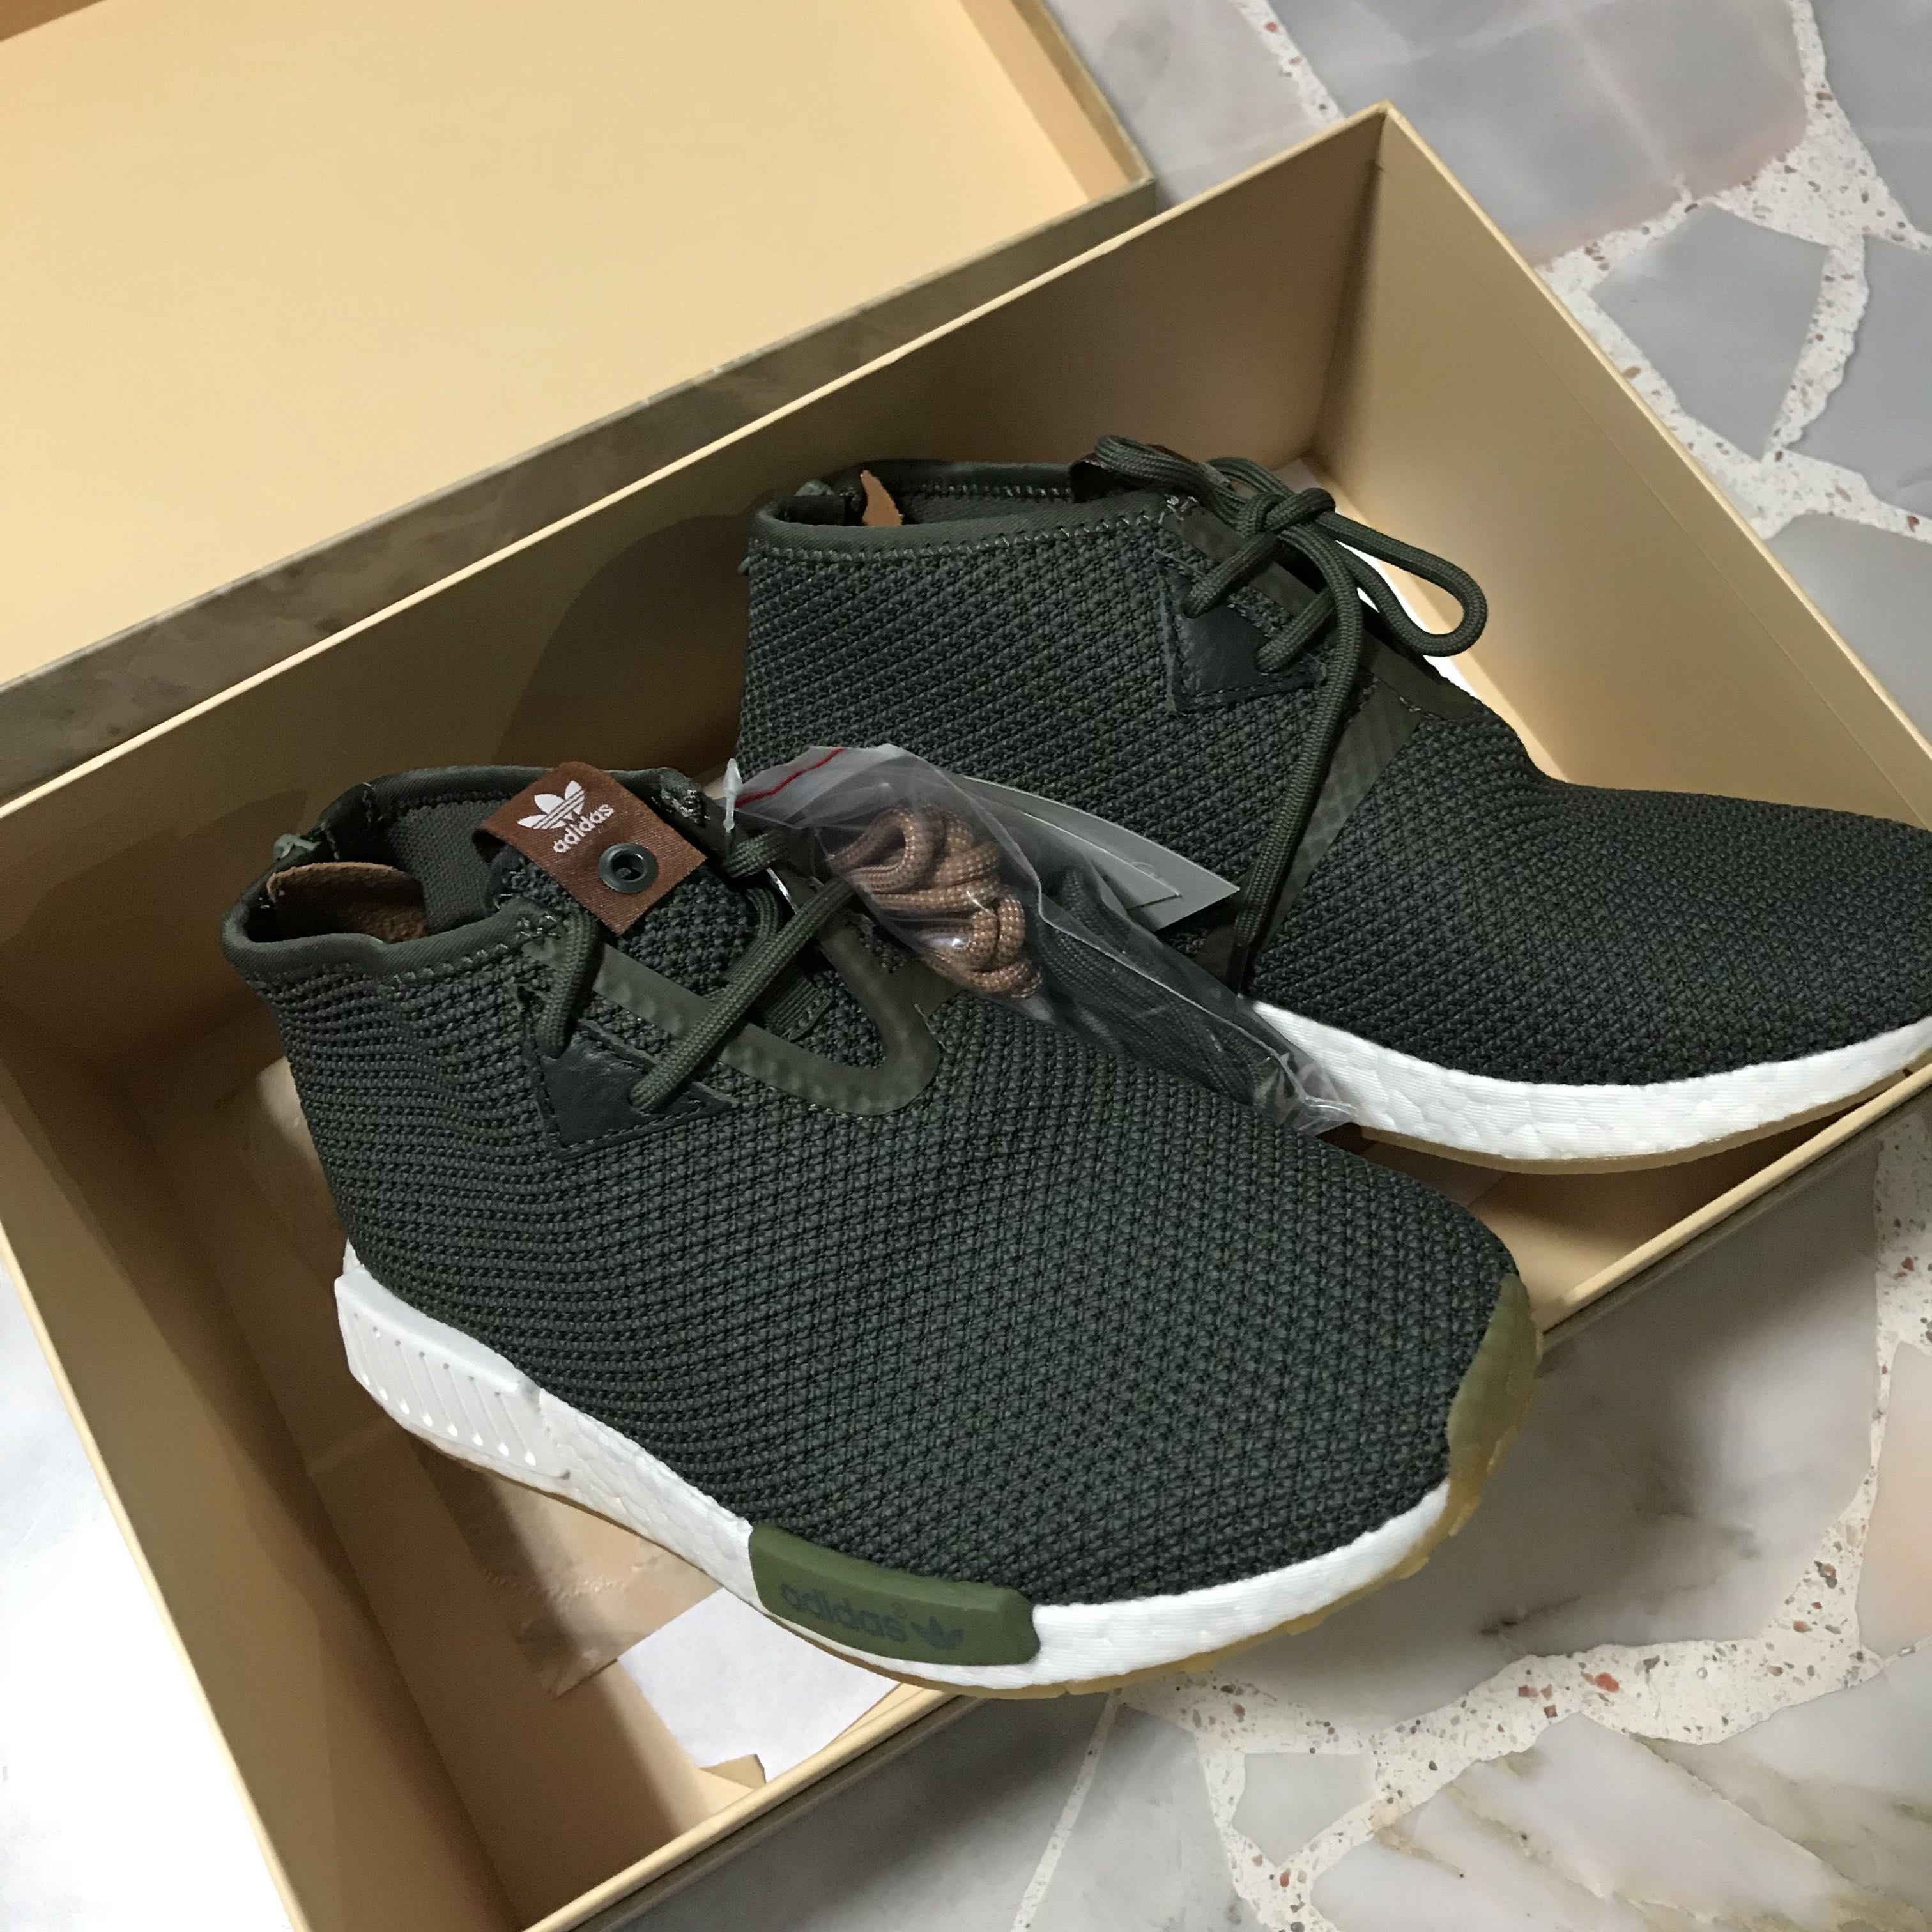 78ccd62335f15 END x Adidas Consortium NMD C1